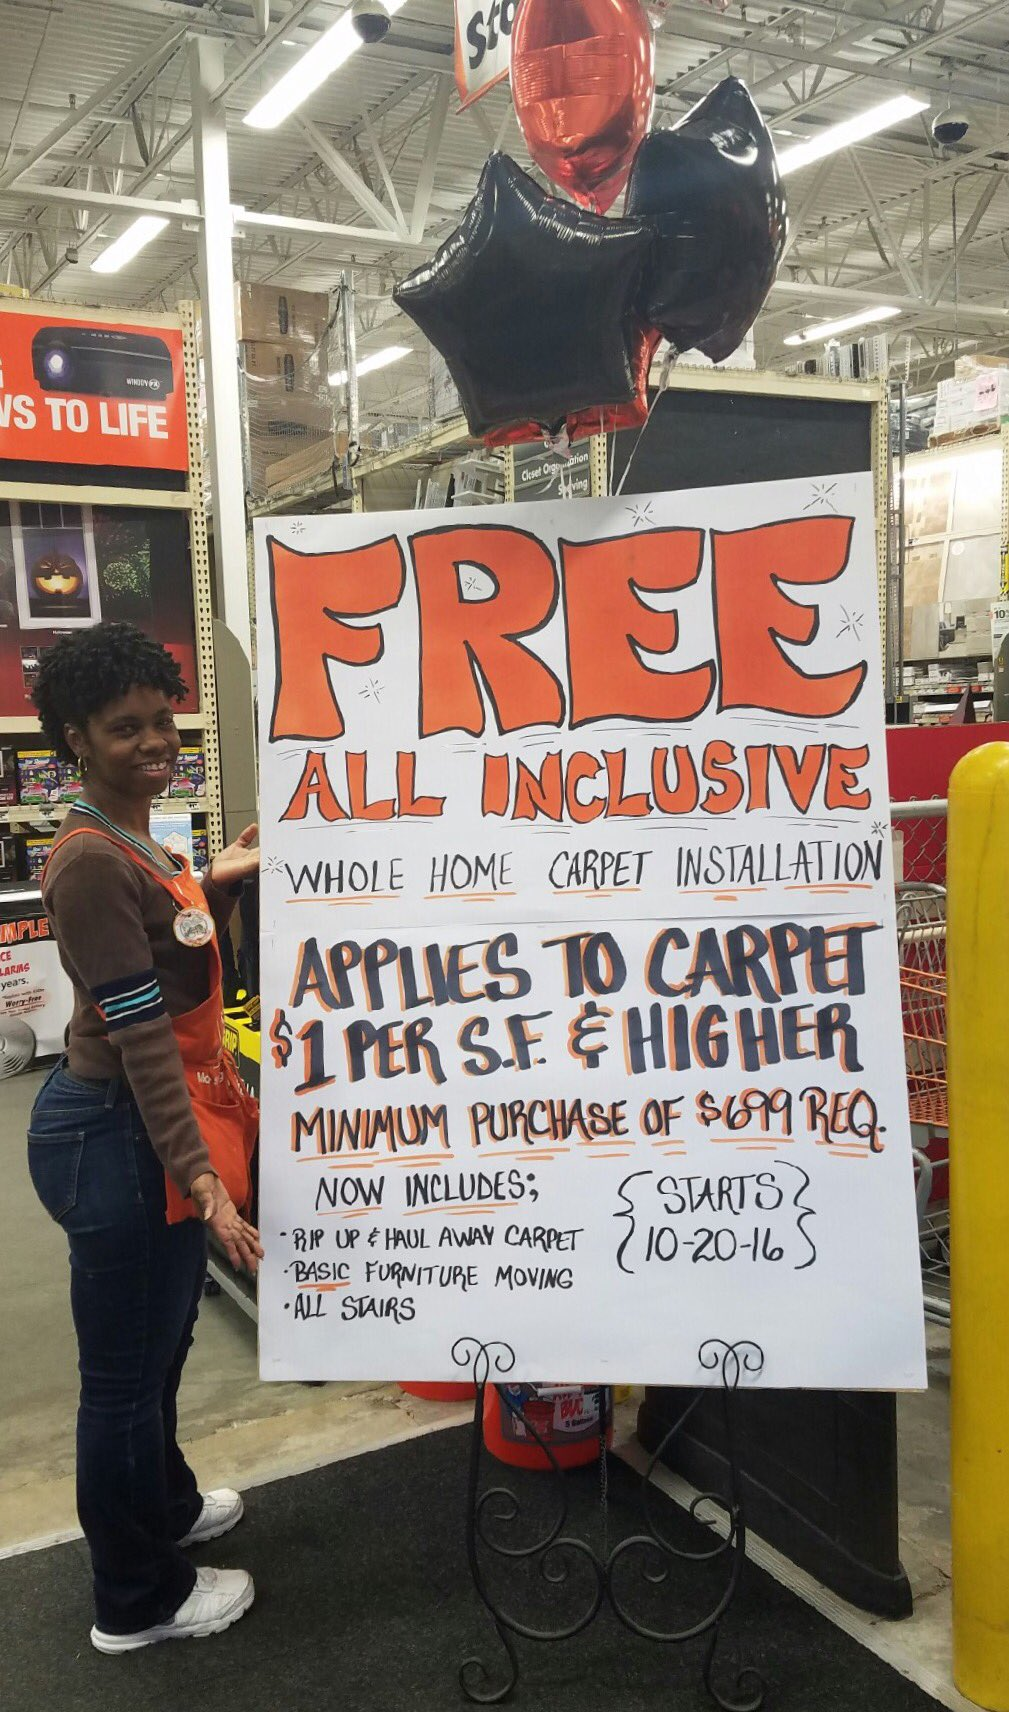 Susan Froude On Twitter That S Right Home Depot Totally Free Carpet Install It Hening Now